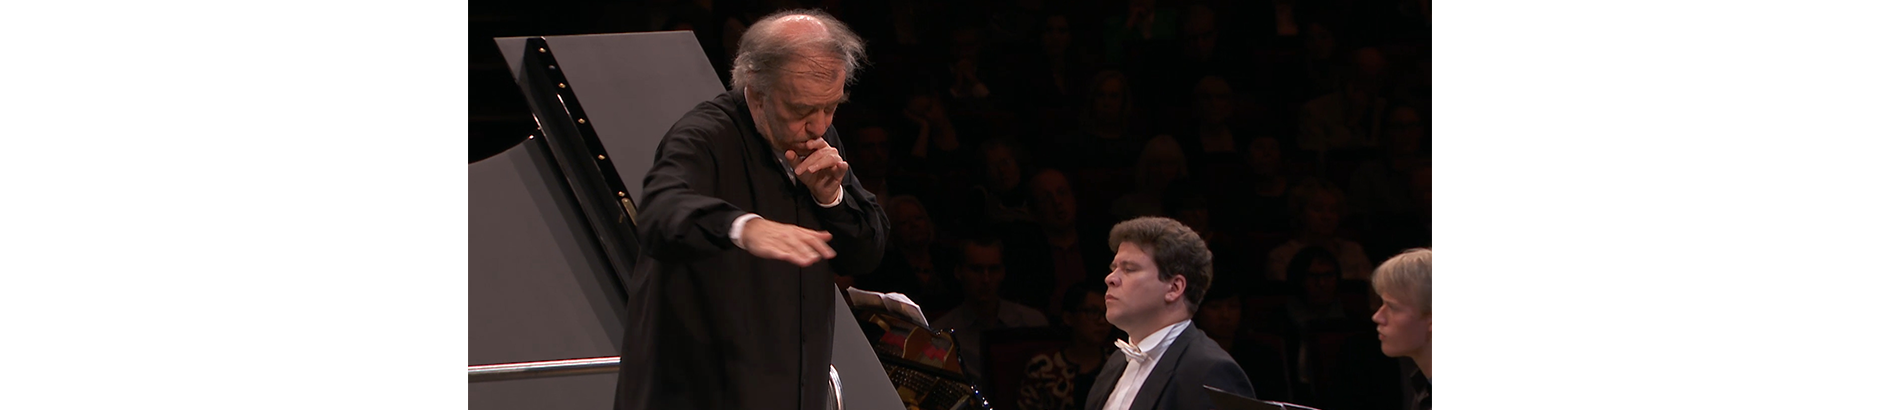 Valery Gergiev conducts Rachmaninov and Tchaikovsky – With Denis Matsuev